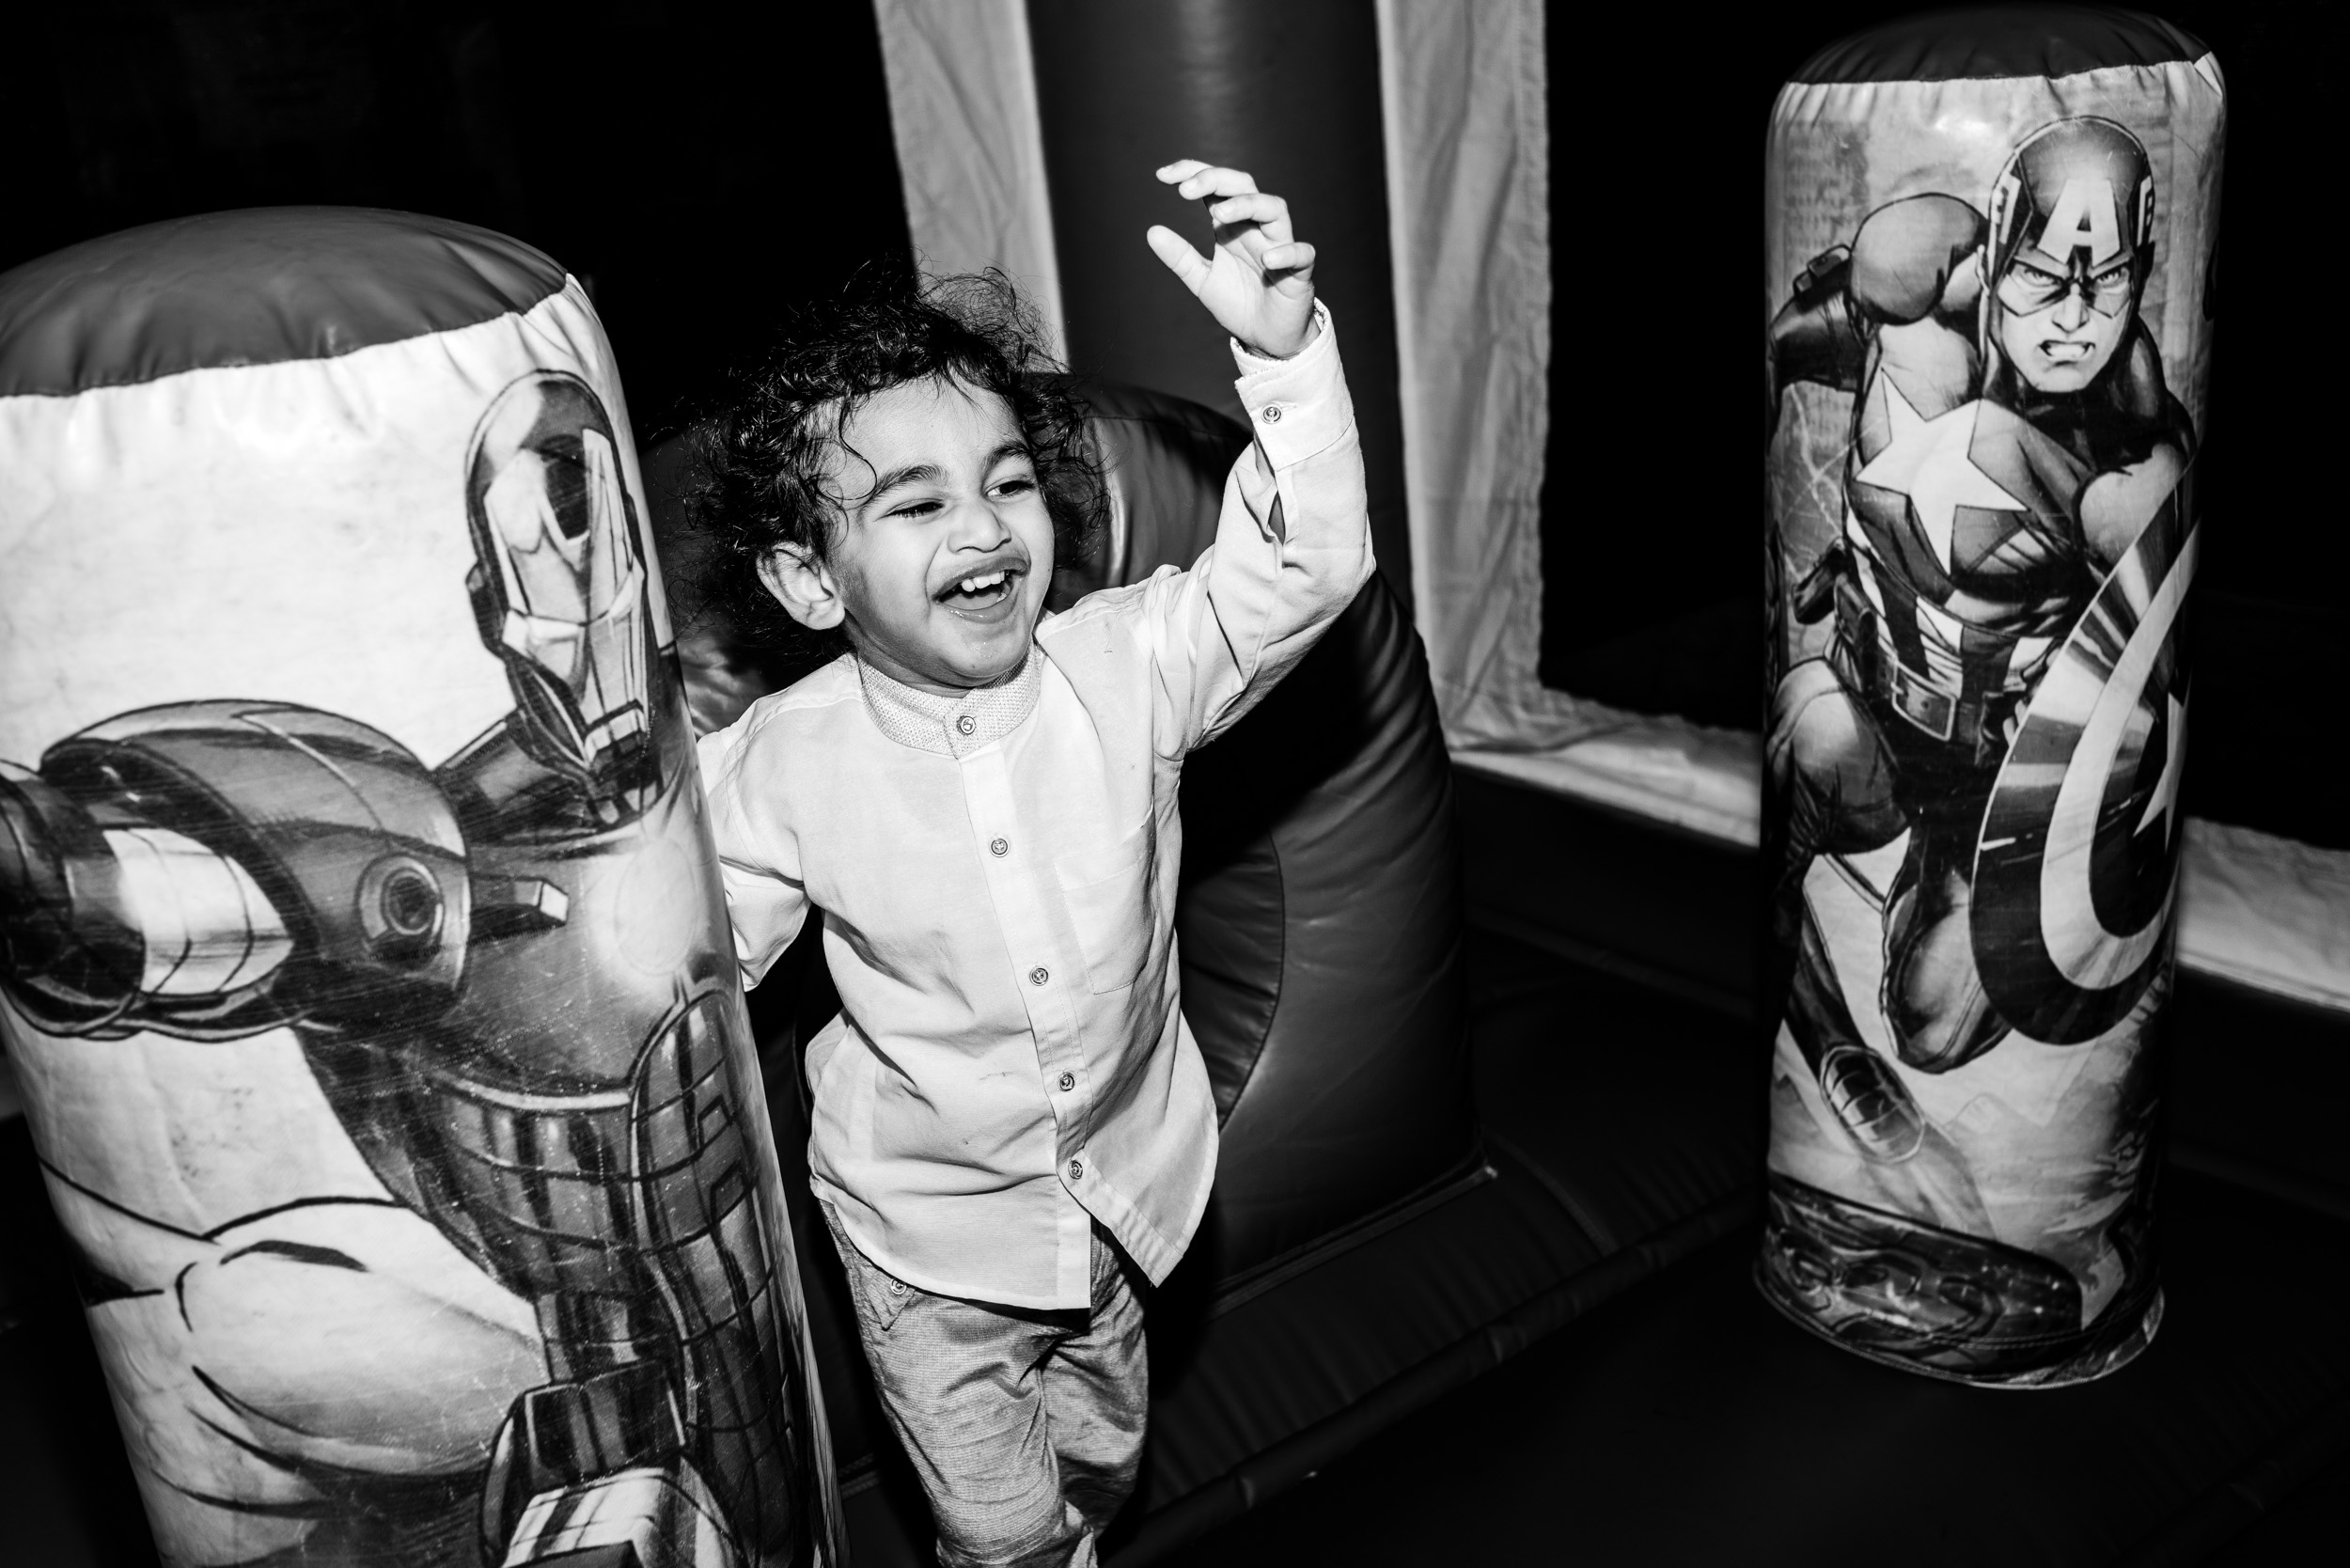 Spyrides_Kyle_Soul.Gazing.Photography_Sushaan's_2nd_Birthday_Party_Event.Photographer.Perth.Party_6.5.2018_DSC2934.jpg